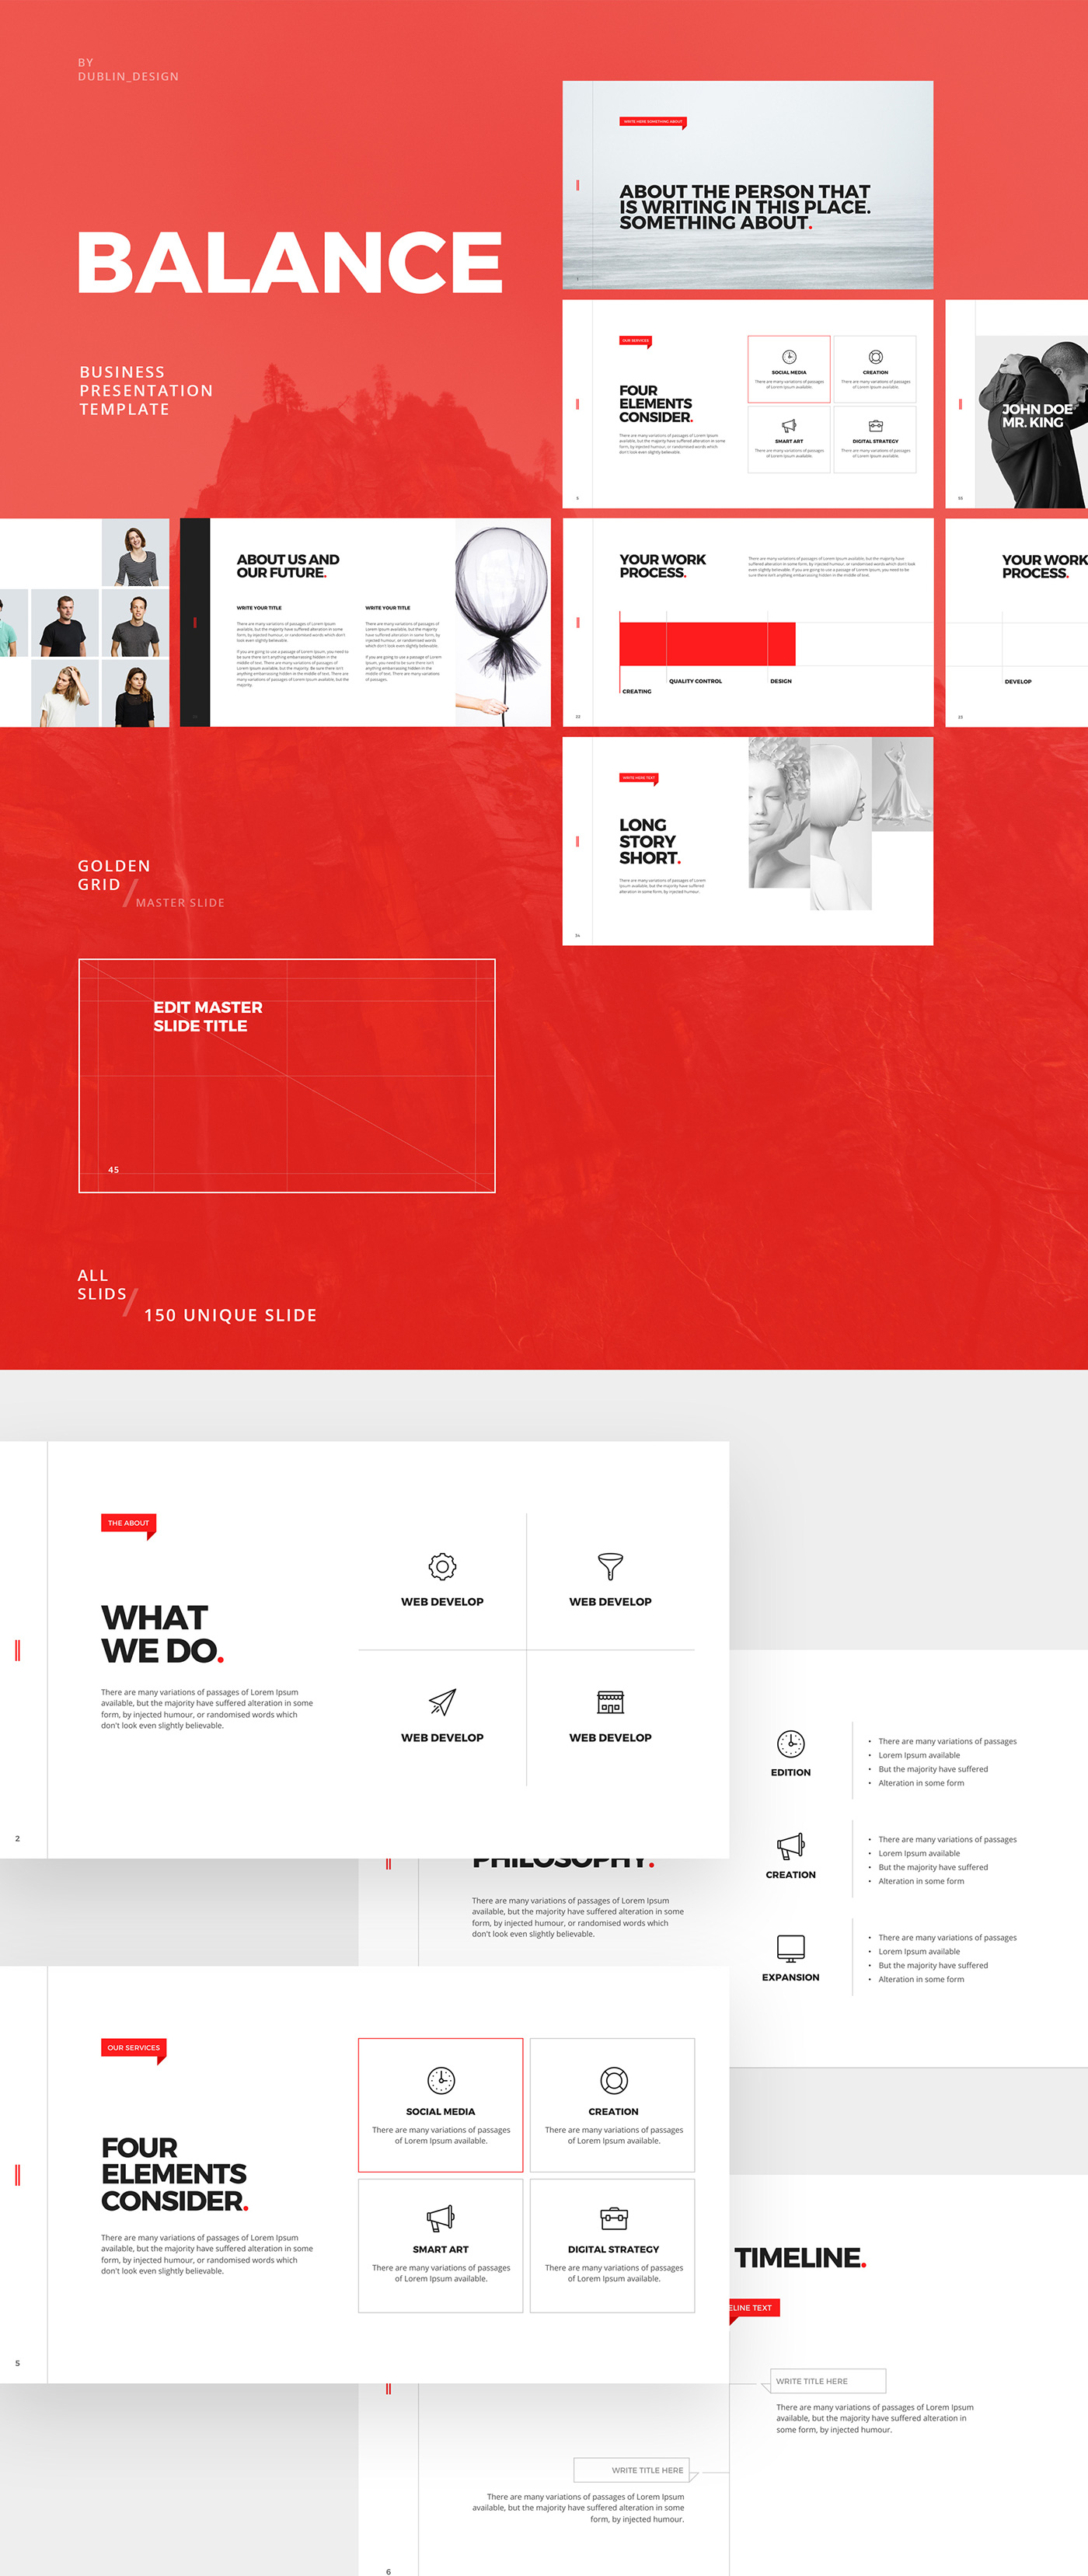 Balance free minimal powerpoint keynote template on behance toneelgroepblik Images